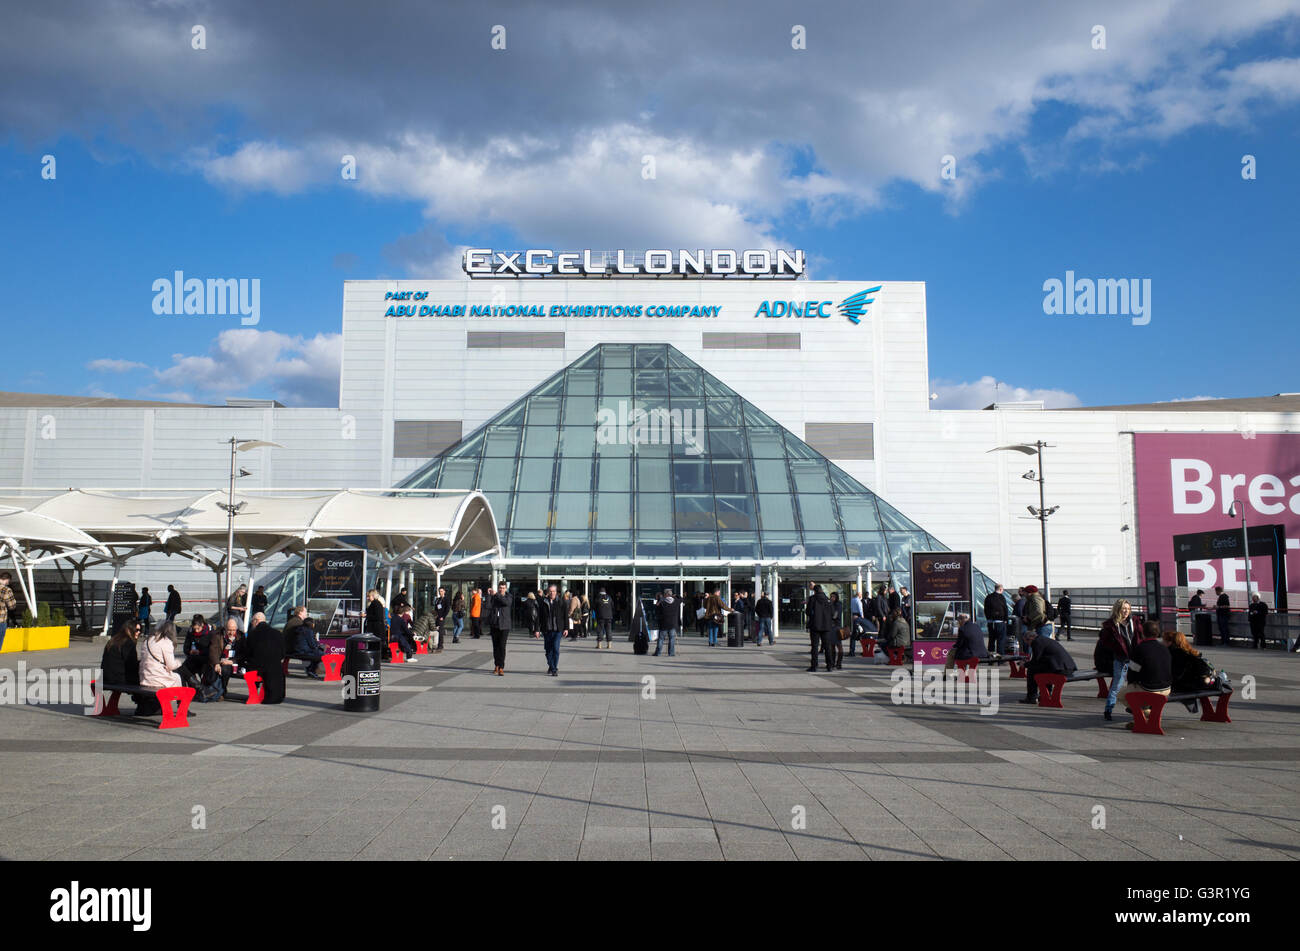 Excel exhibition centre, London, England, UK - Stock Image